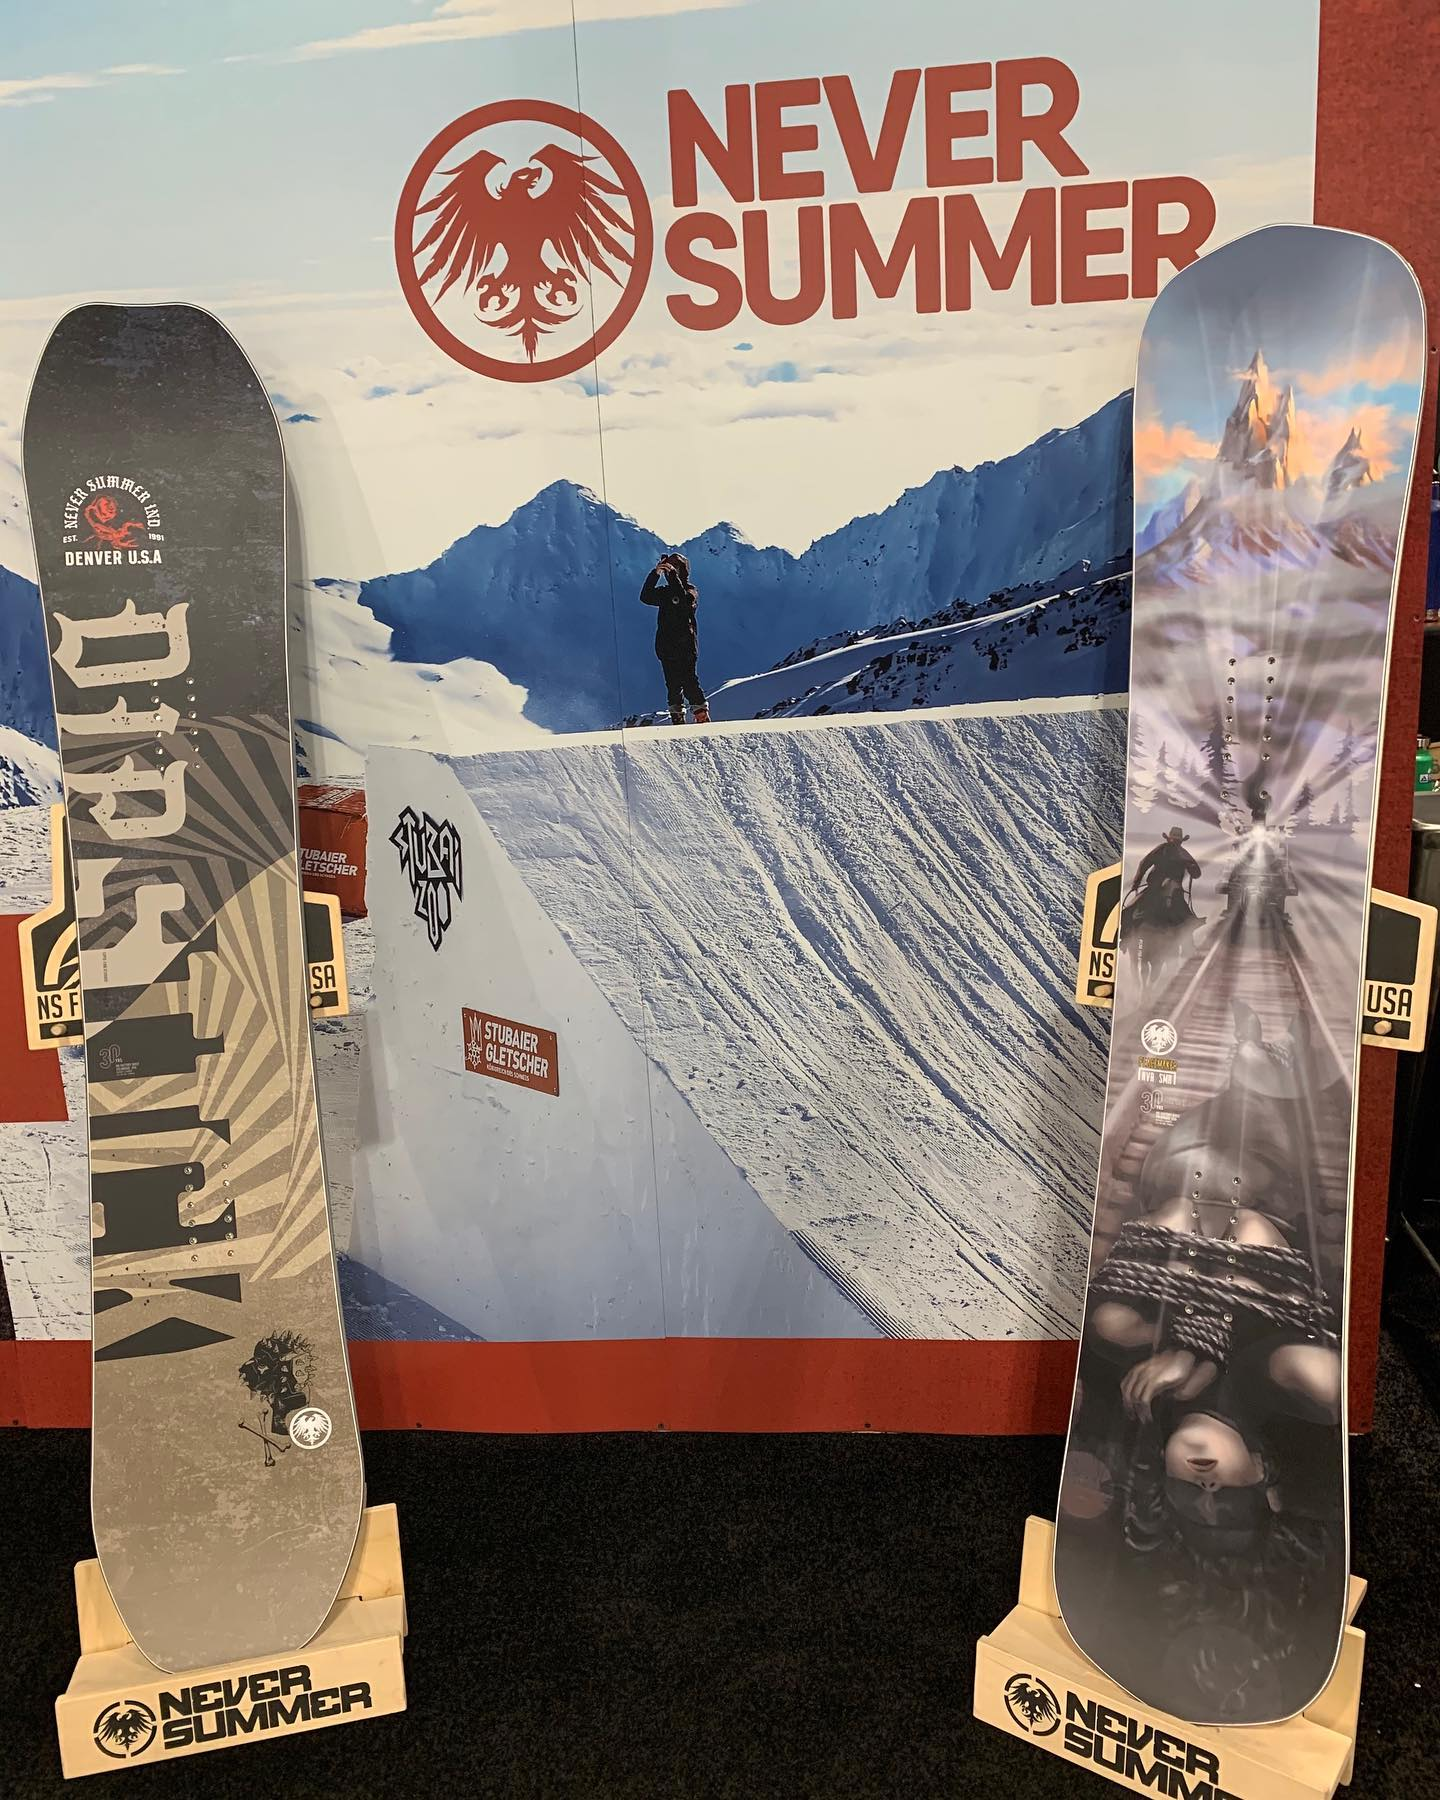 image of never summer snowboards